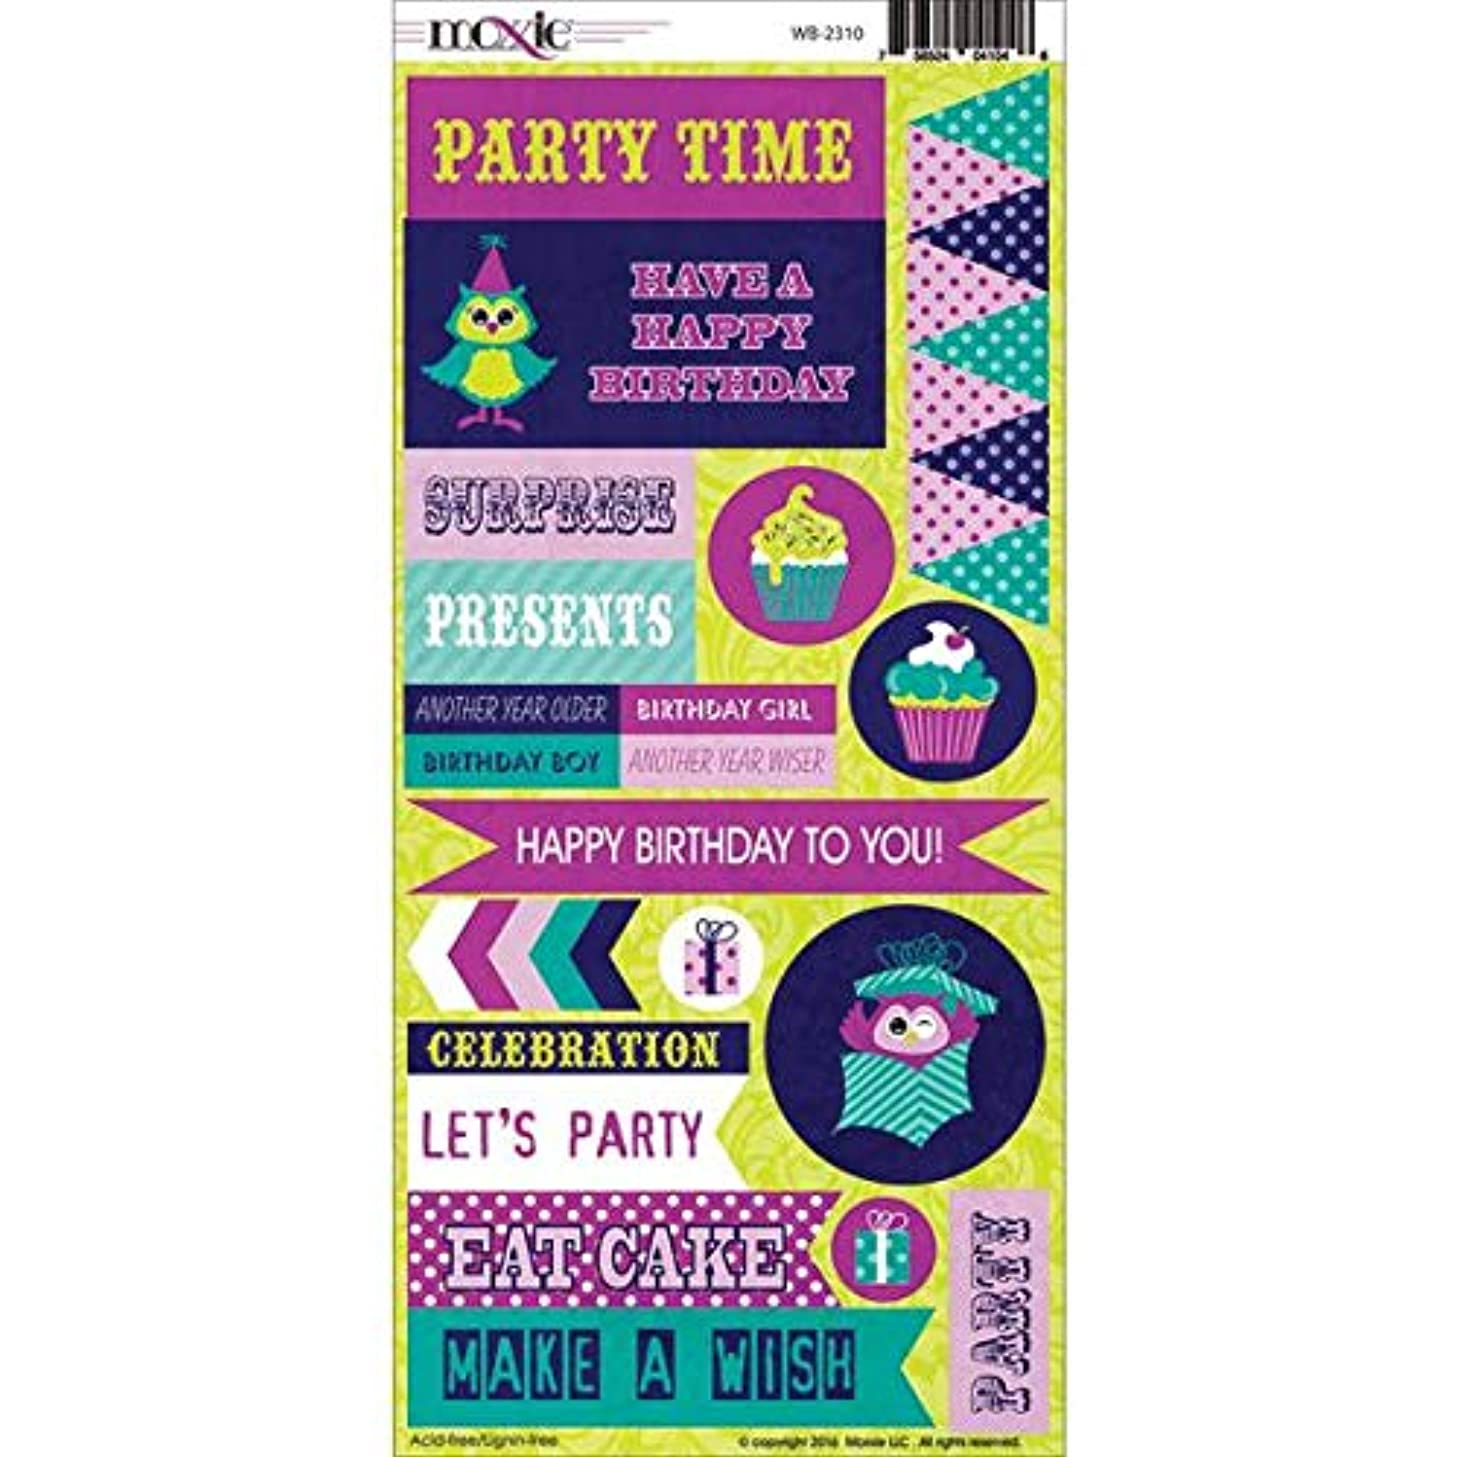 Moxxie WB-2310 Who's Birthday Cardstock Stickers, Multicolor